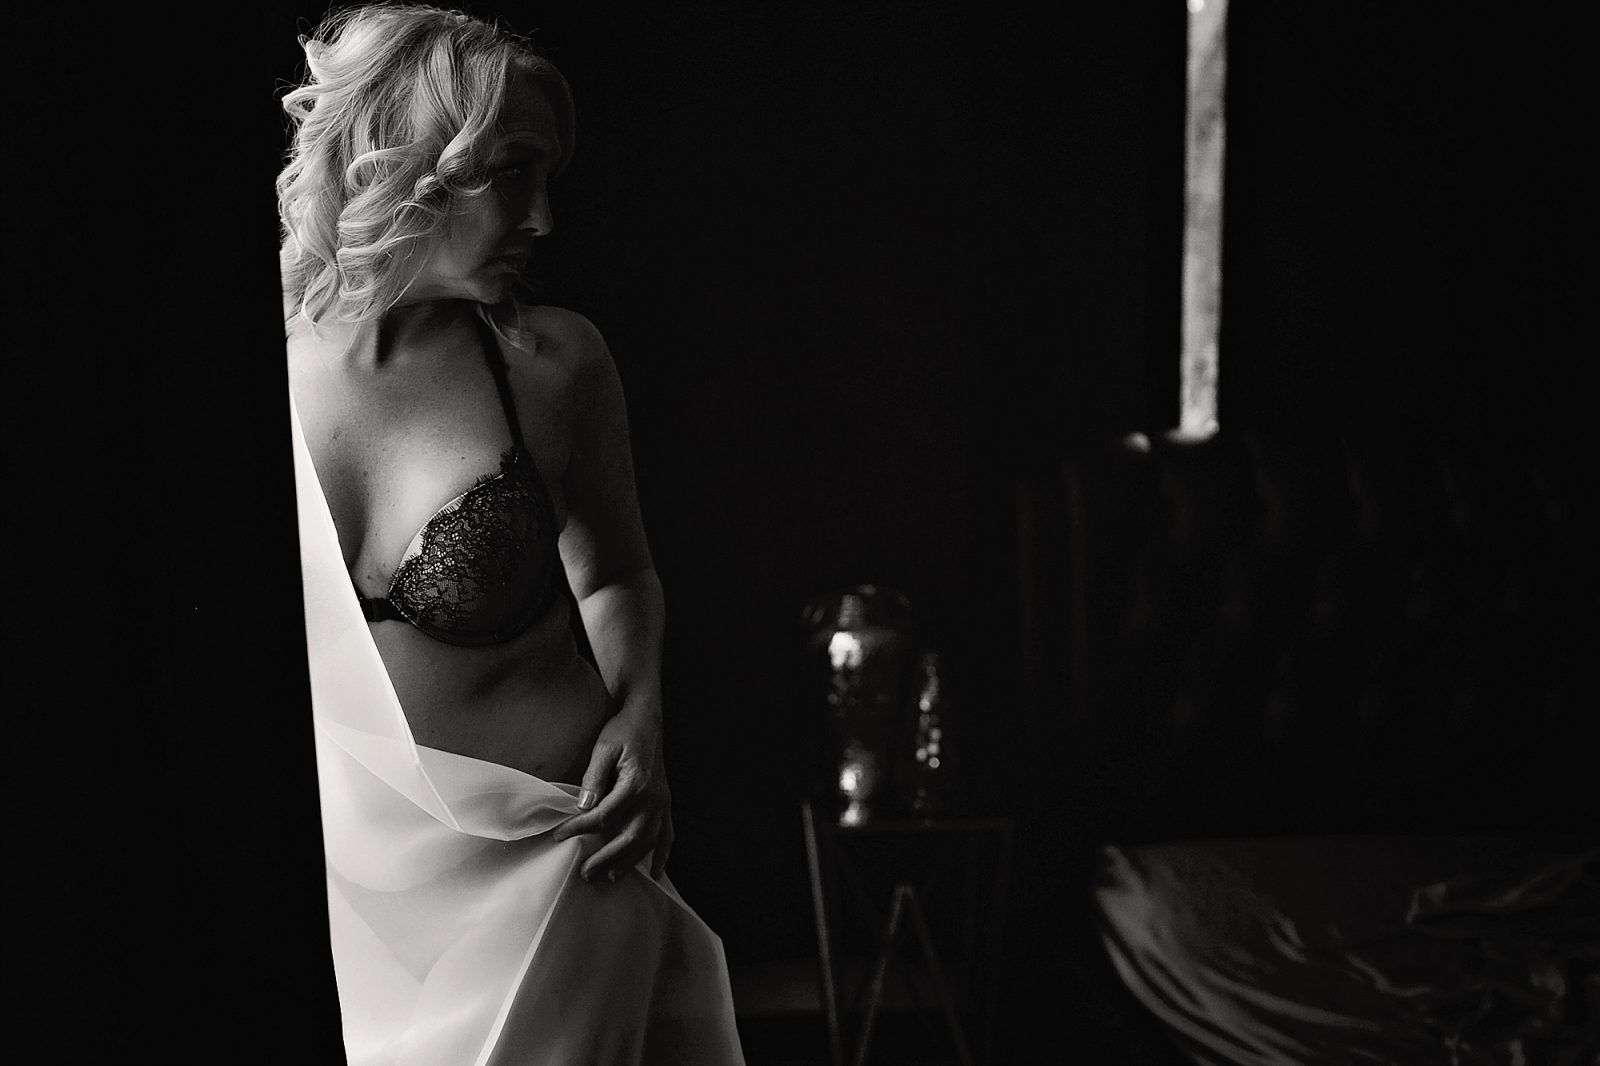 oakland california boudoir photographer